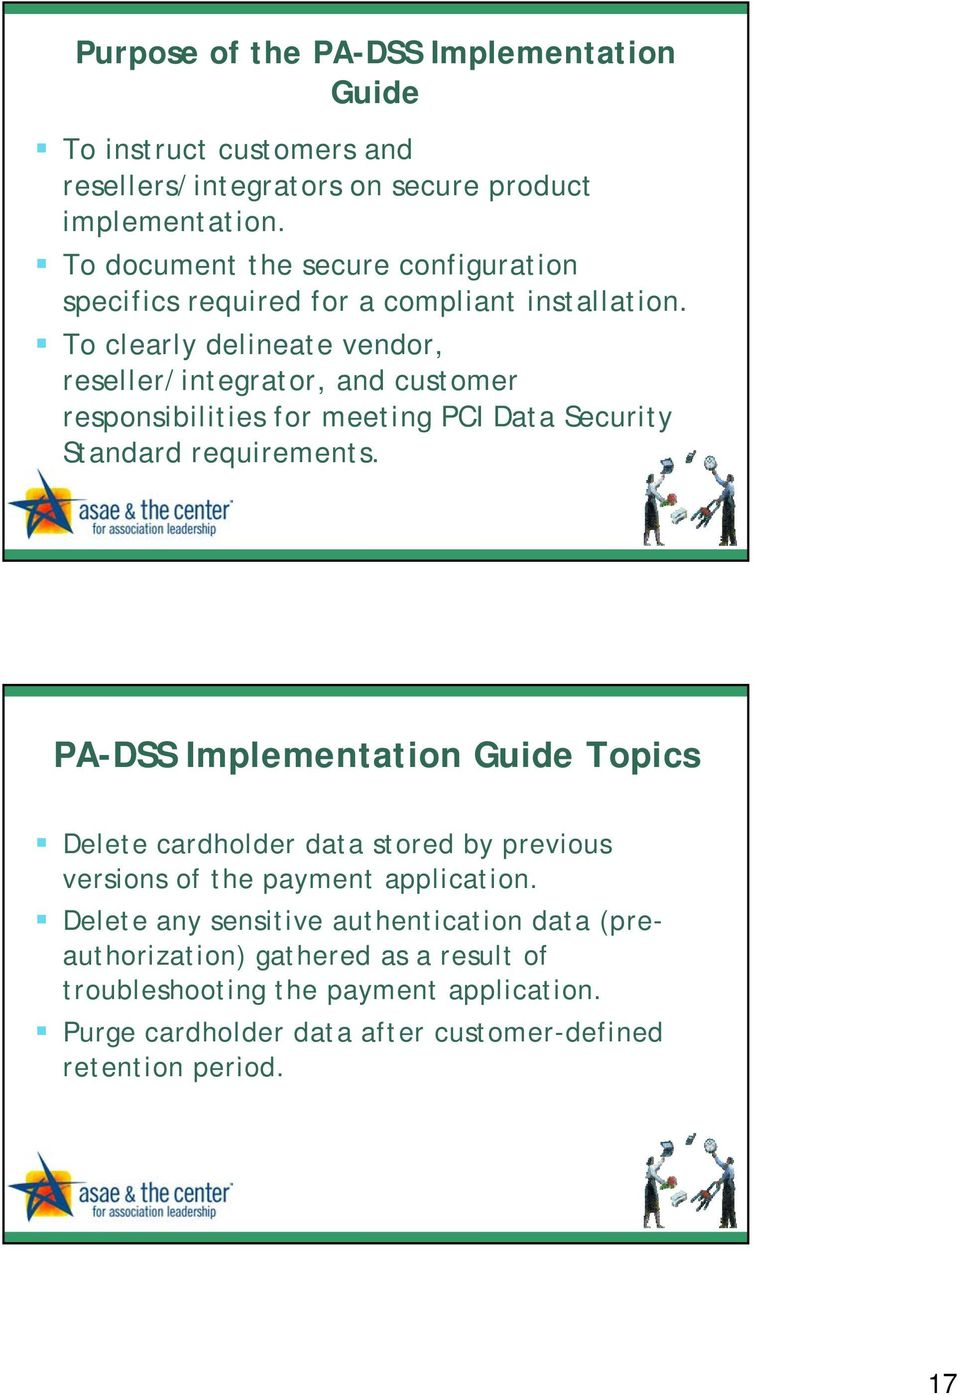 To clearly delineate vendor, reseller/integrator, and customer responsibilities for meeting PCI Data Security Standard requirements.